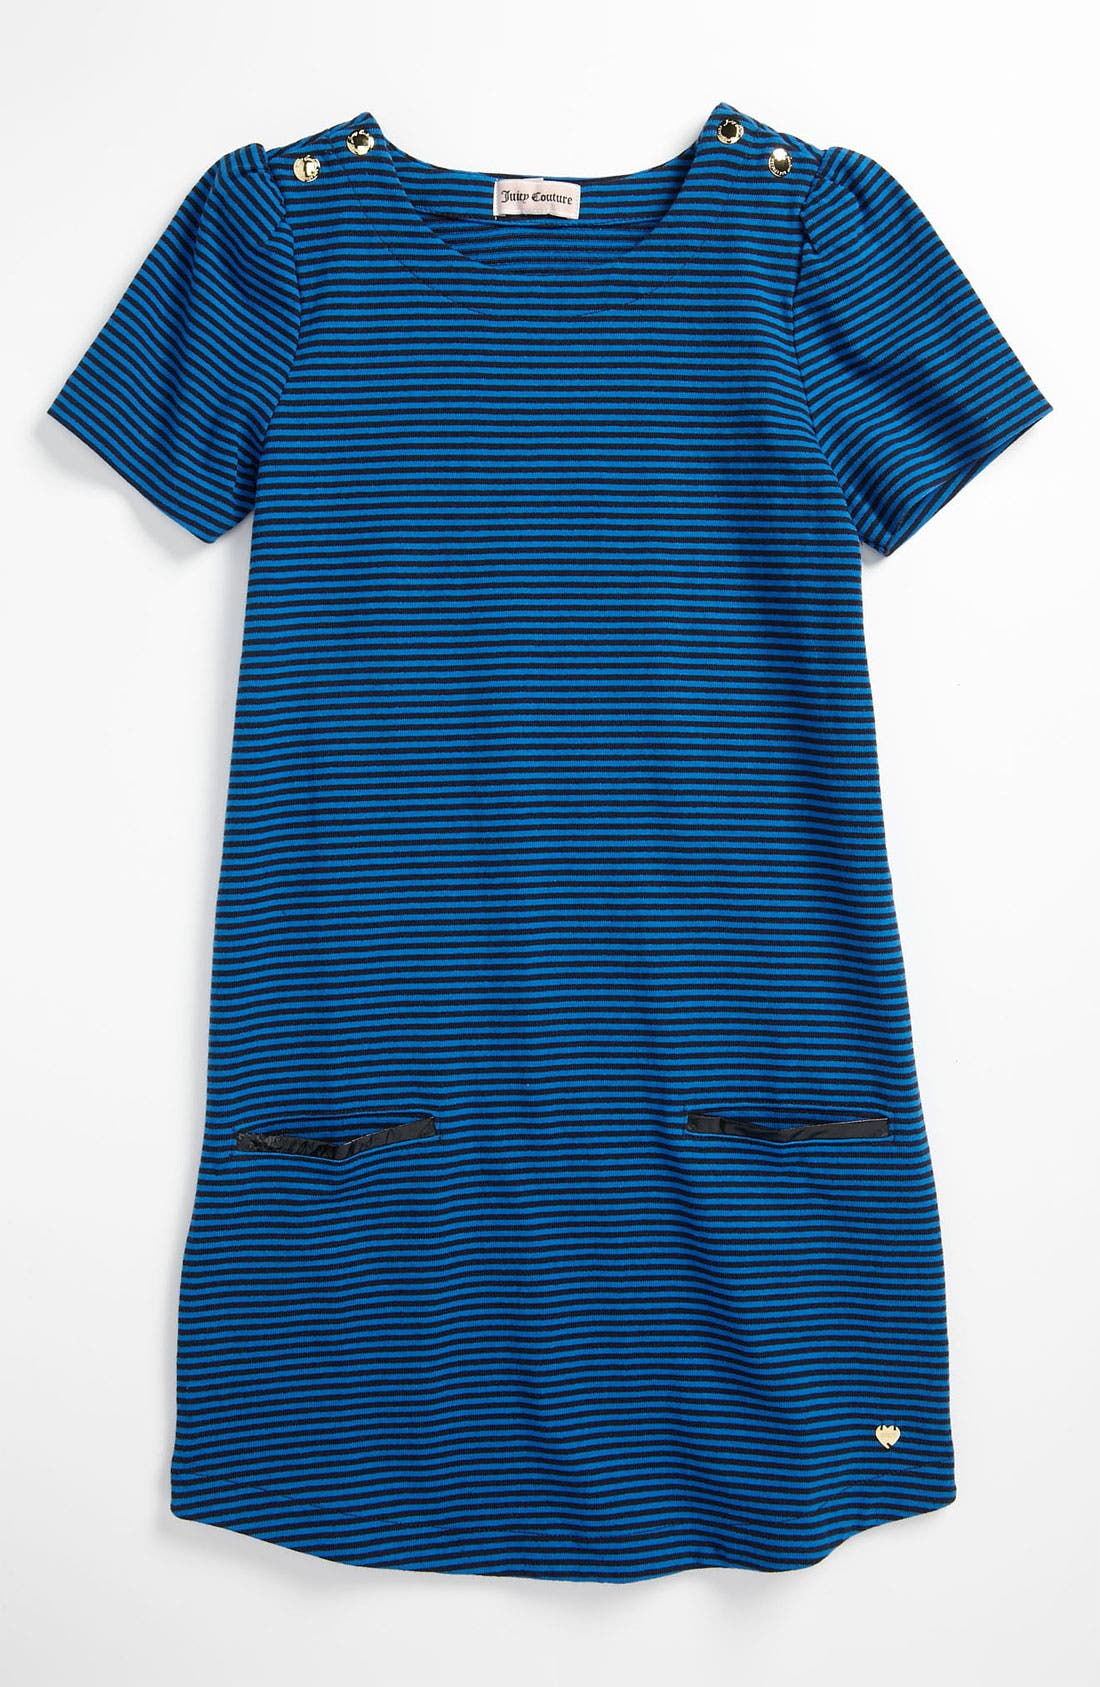 Main Image - Juicy Couture Stripe Jersey Dress (Little Girls & Big Girls)